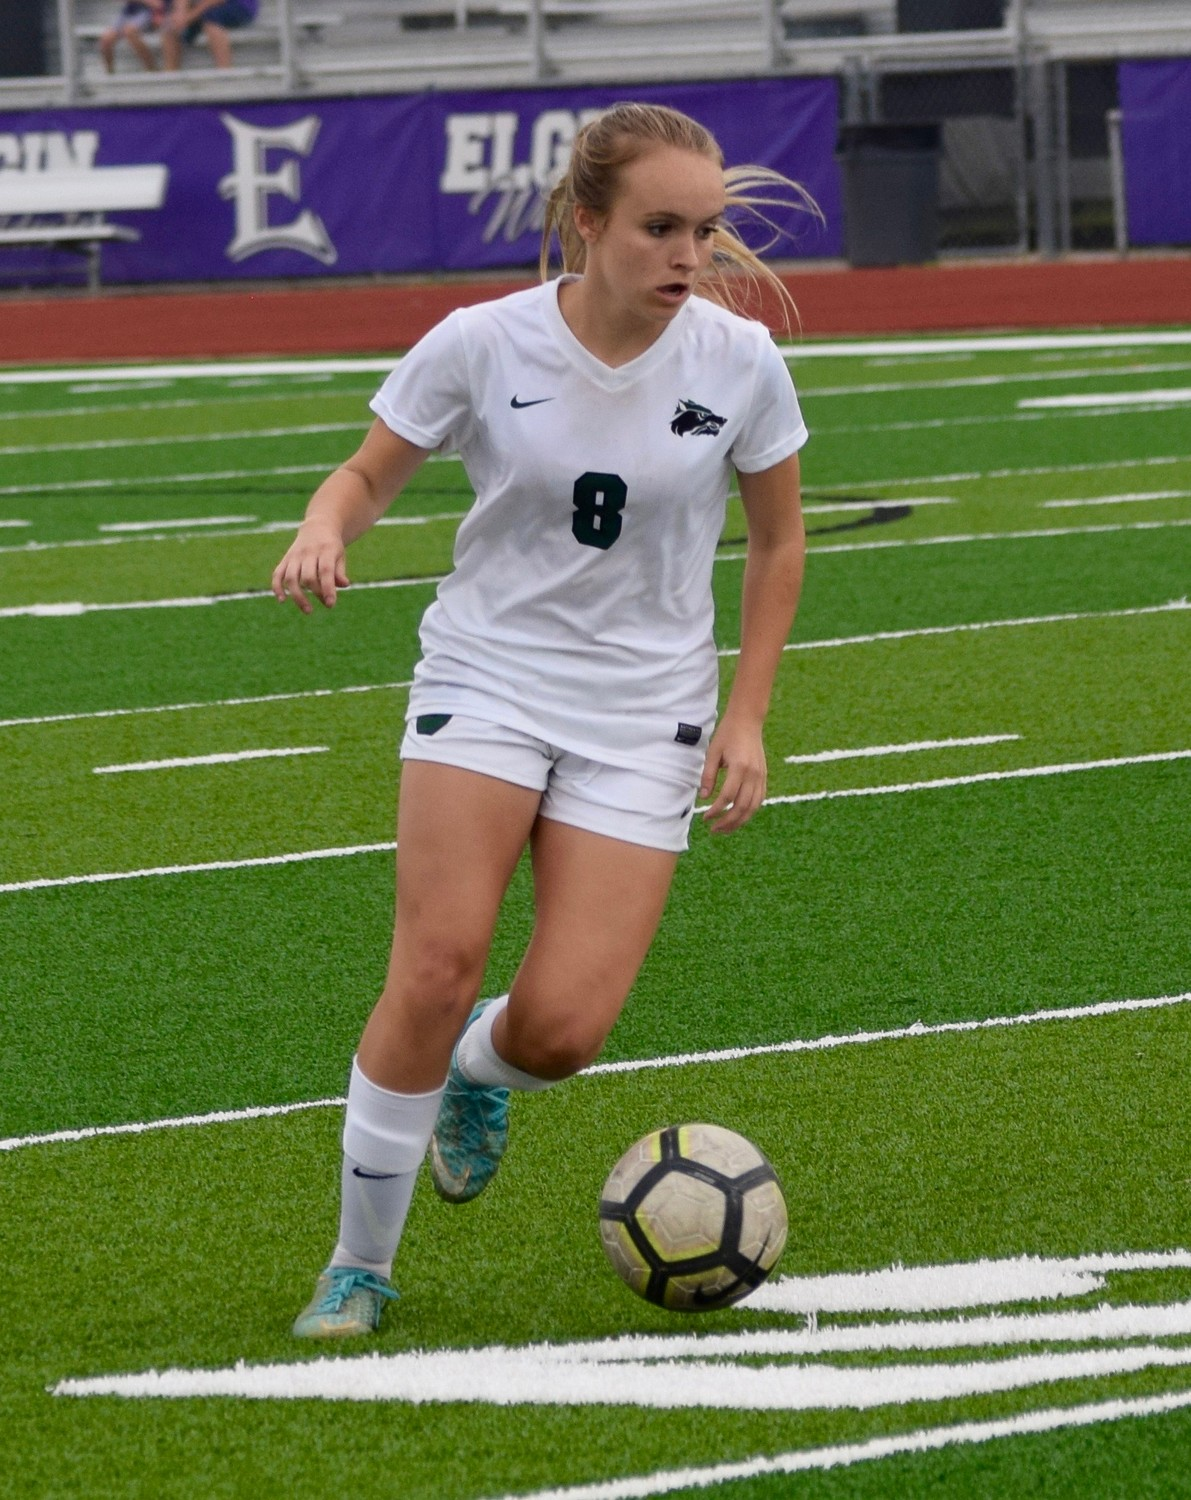 Ainsley Forbes and Cedar Park beat College Station 2-1 in the third round of the playoffs Tuesday night.